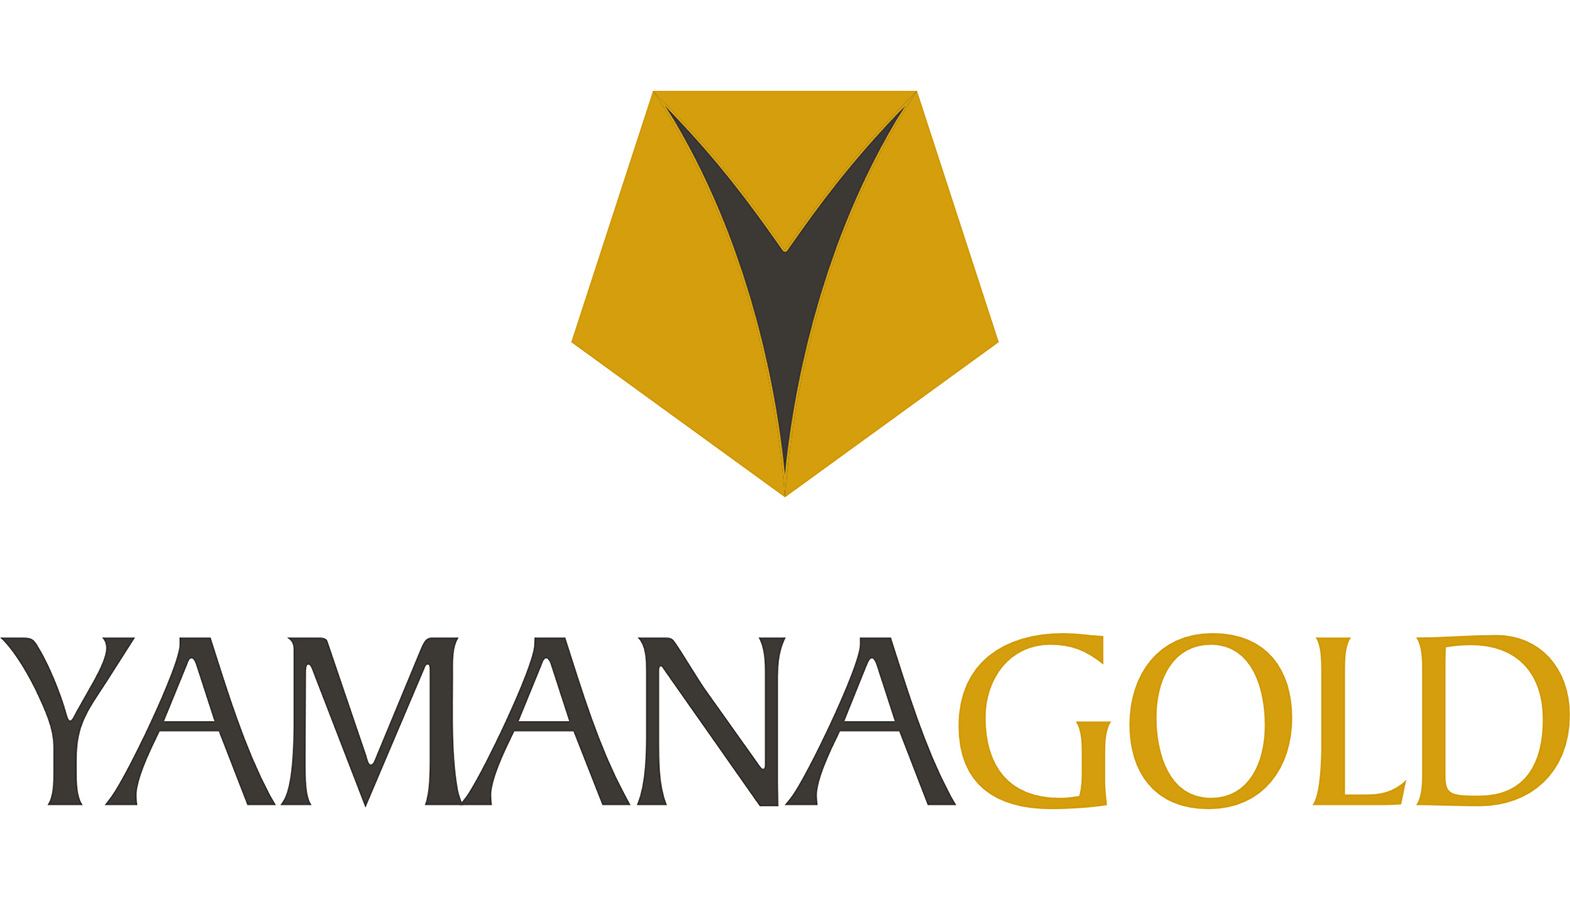 Yamana Gold Inc (AUY) generated a Return on Equity (TTM) of 6.31% and a Return on Assets (TTM) of 1.86%